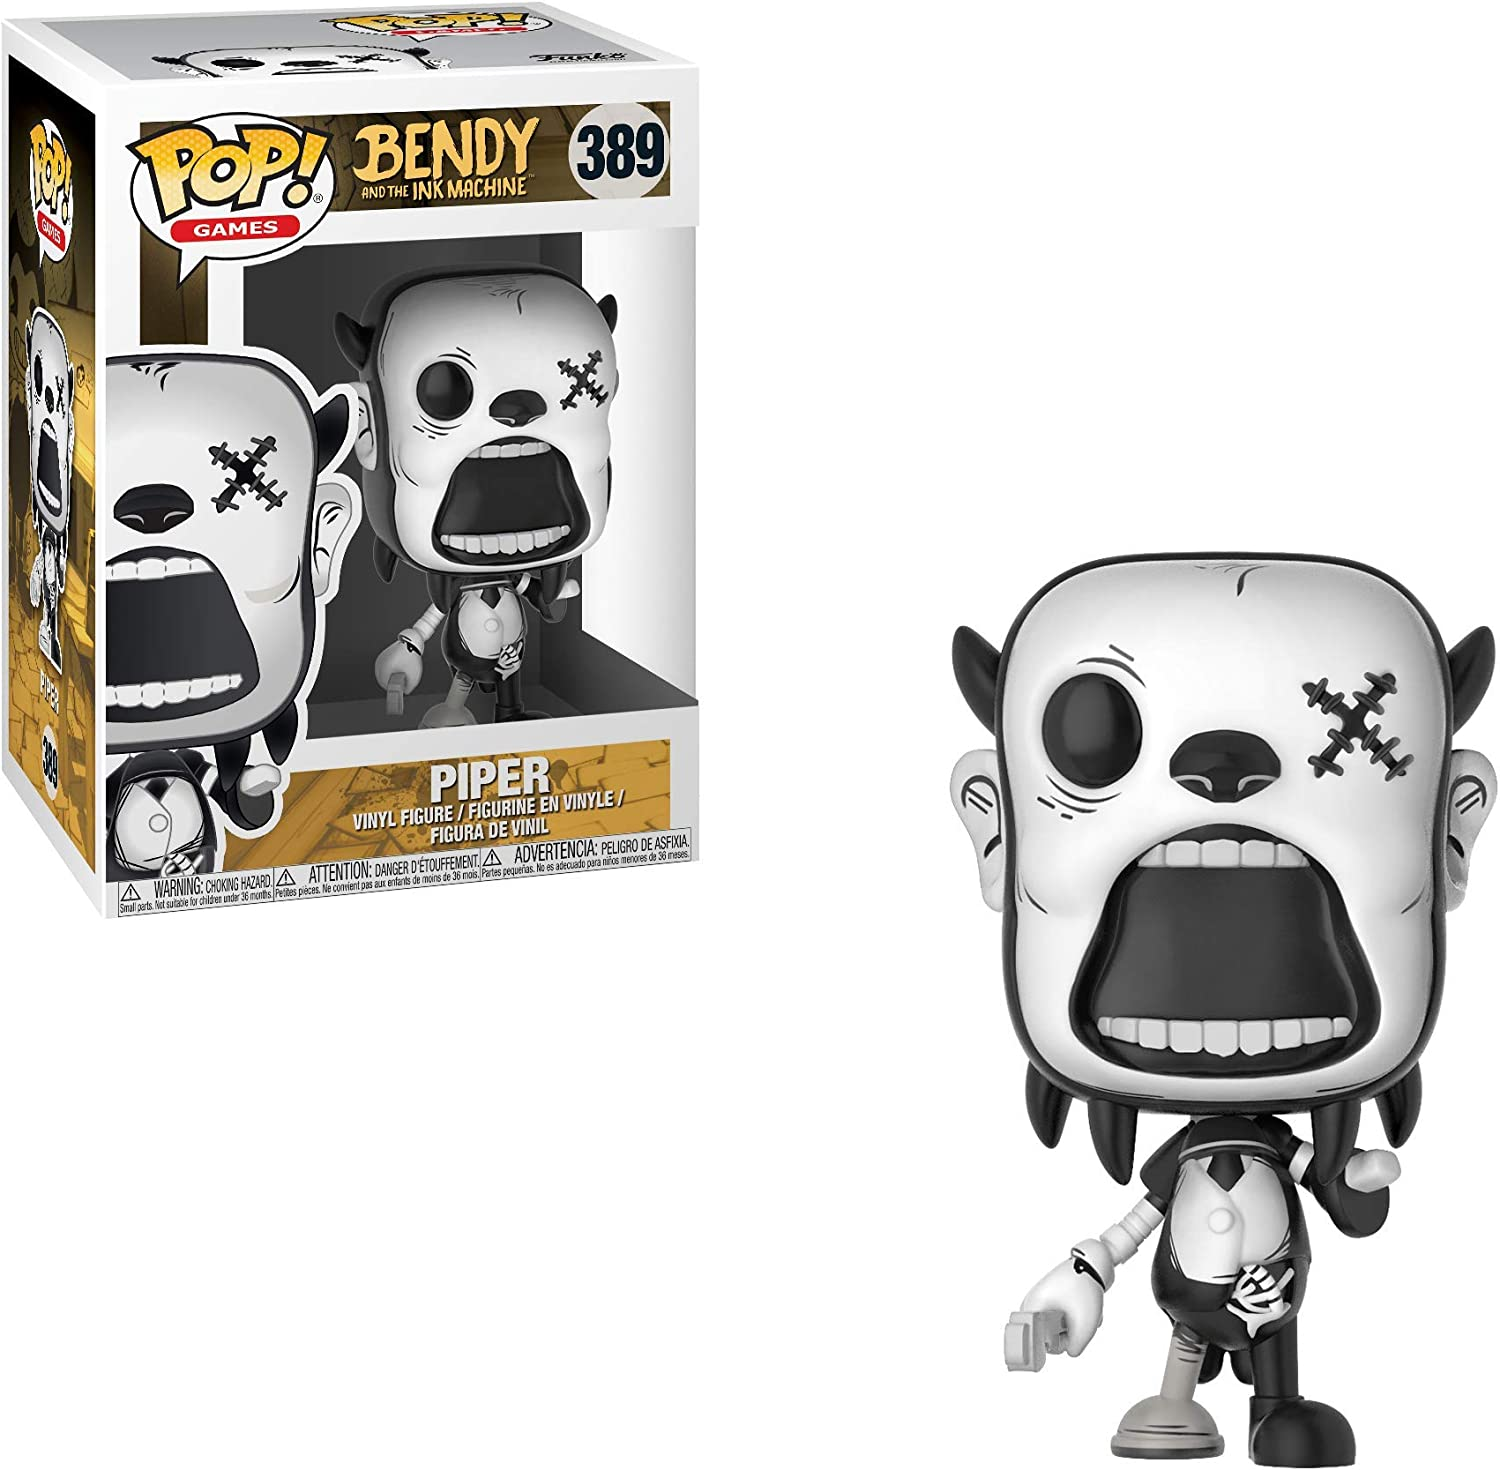 Striker Collectible Figure Funko Pop Games Bendy and The Ink Machine Multicolor